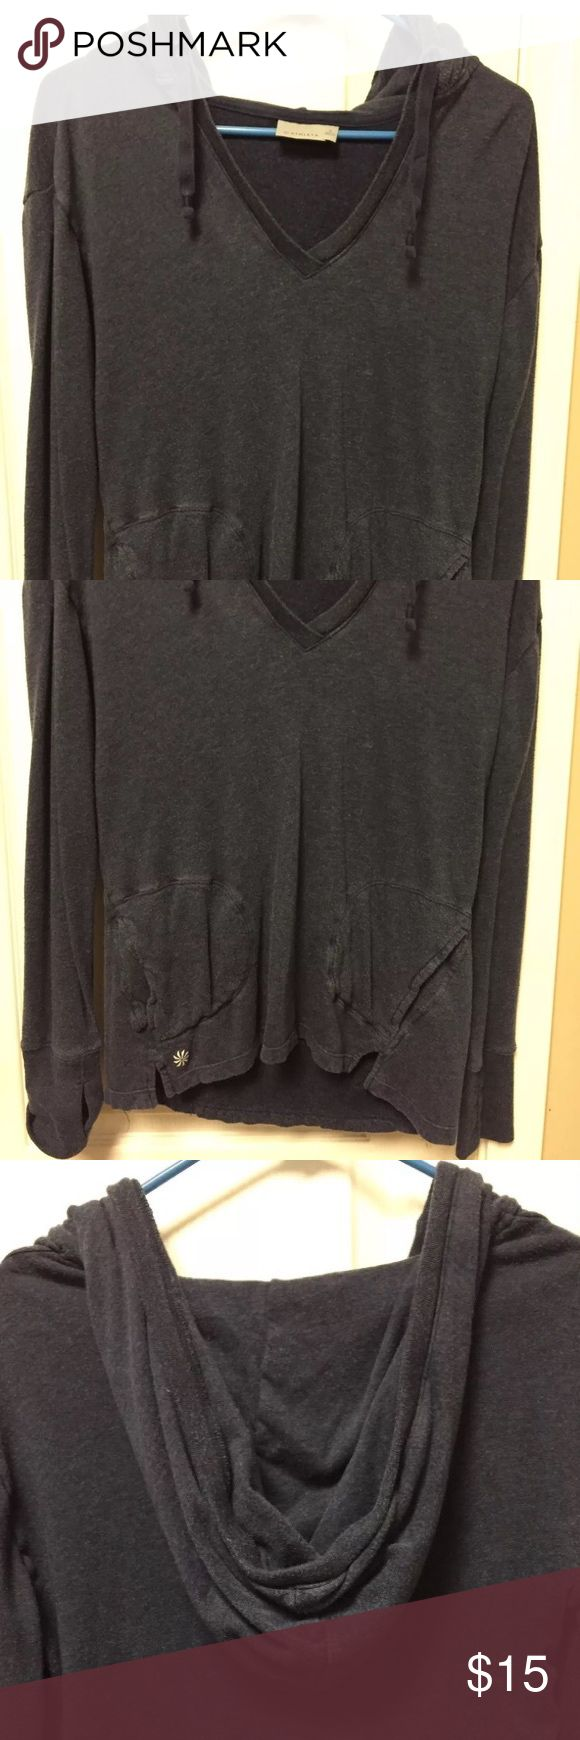 """Athleta No Rush Hoodie Sweatshirt S Navy Blue Athleta No Rush Hoodie Sweatshirt Pullover S Navy Blue Women's Small Athleta No Rush Hoodie Style # 982932 Length 27"""" Chest 21"""" (armpit to armpit) Tencel / Cotton/ Rayon Good pre owned condition - some pilling Non smoking home Athleta Tops Sweatshirts & Hoodies"""